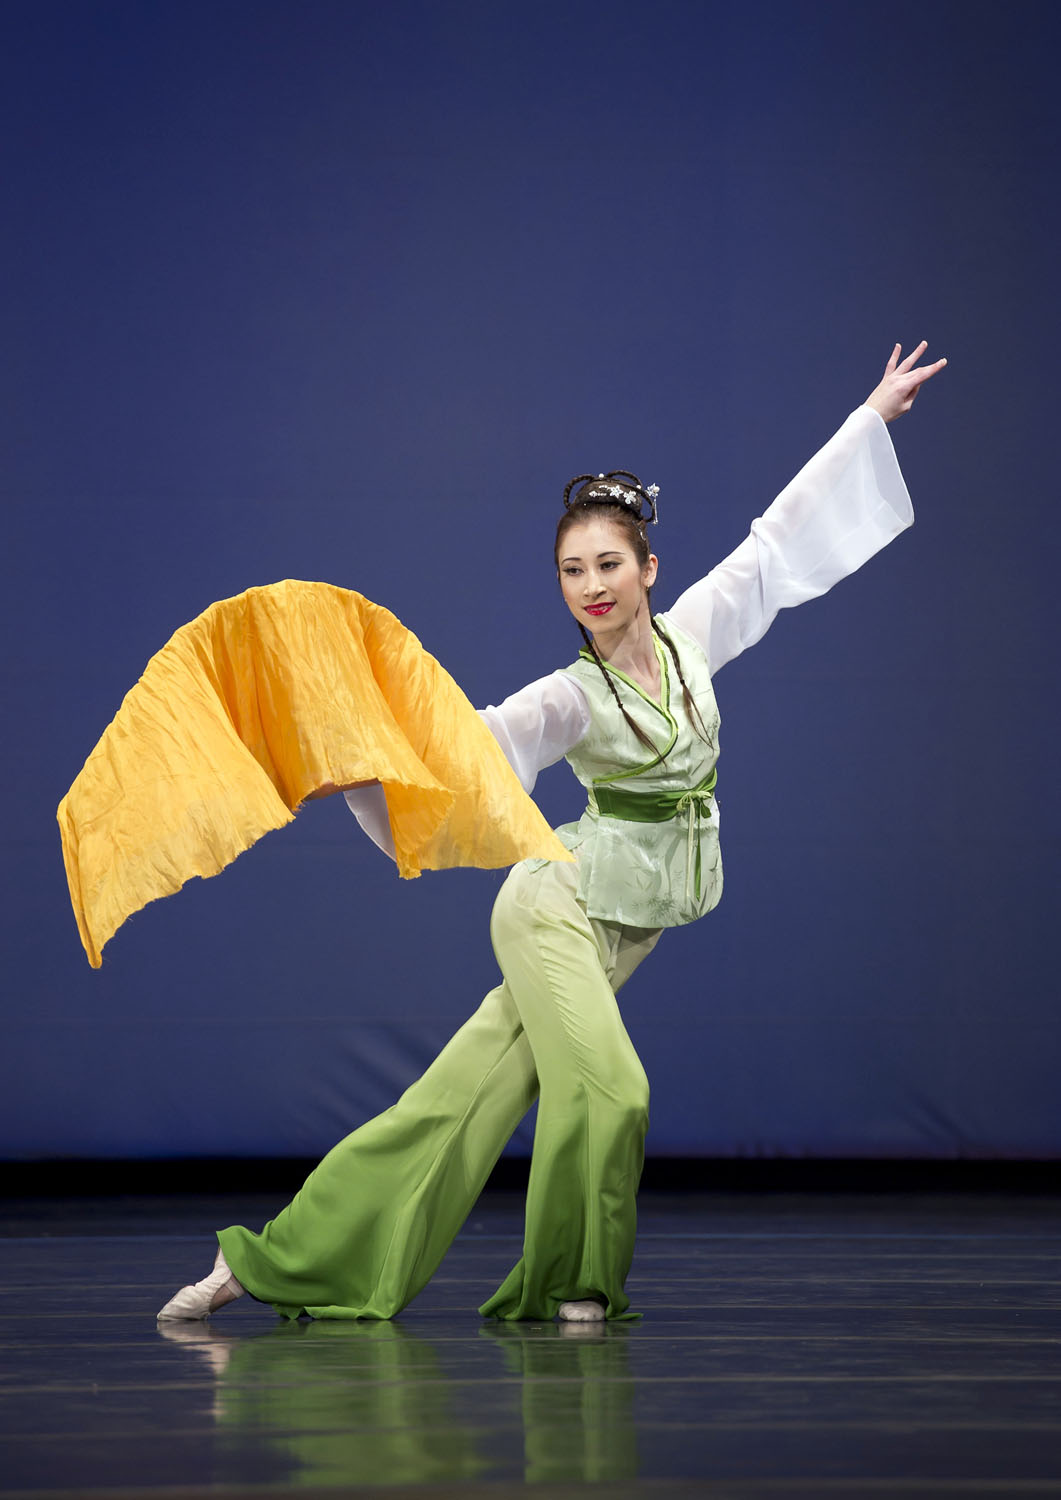 chinese culture dance - photo #30